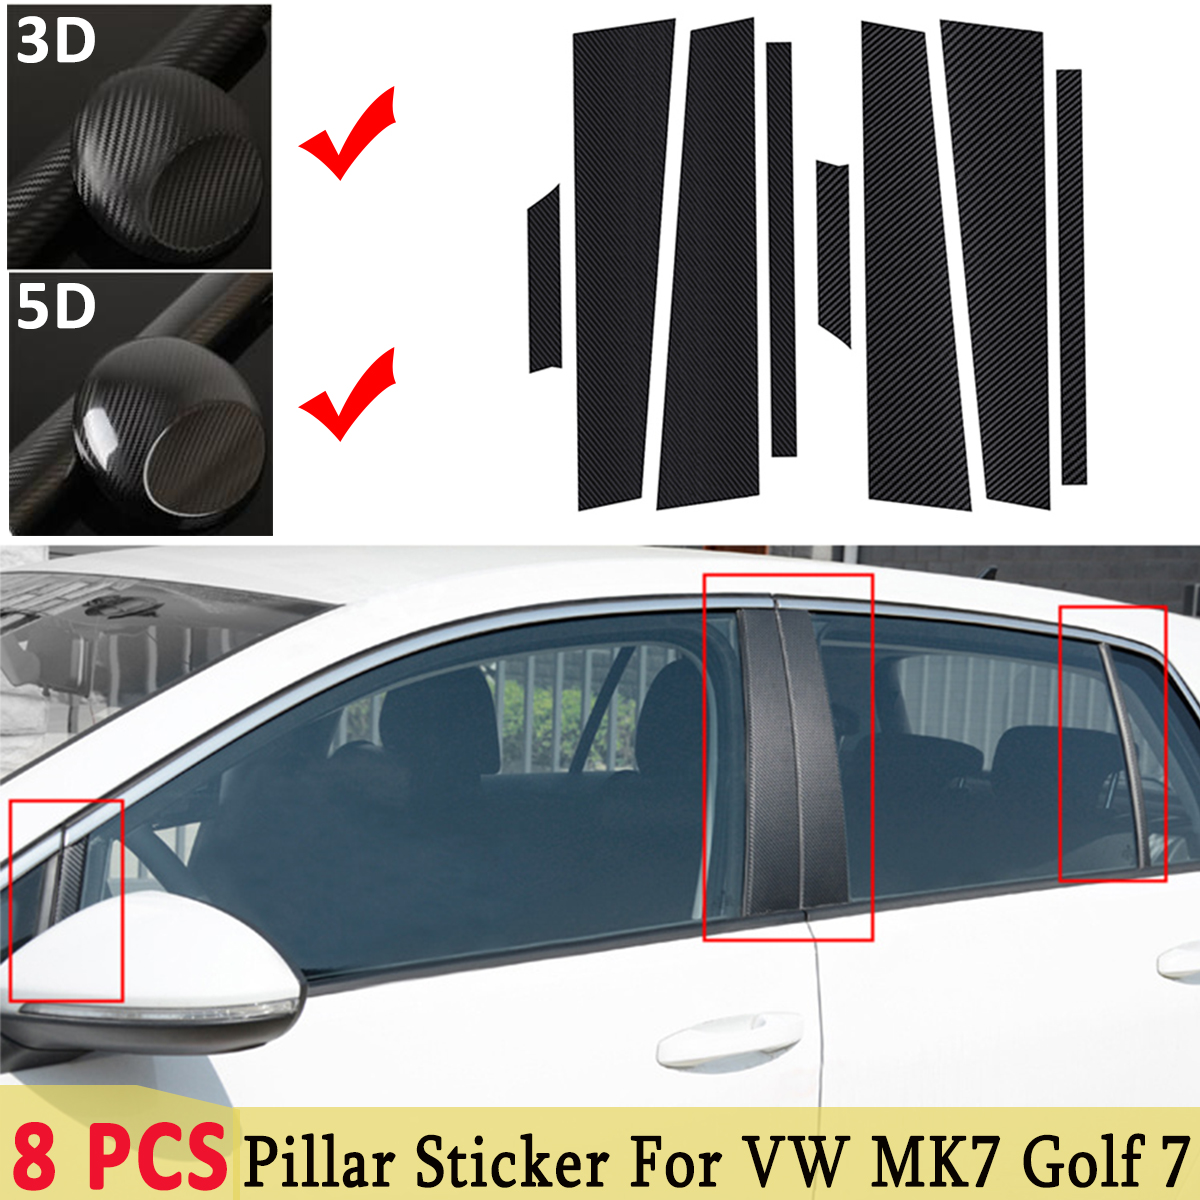 3D / 5D For Volkswagen For VW MK7 <font><b>Golf</b></font> <font><b>7</b></font> Accessories <font><b>Carbon</b></font> <font><b>Fiber</b></font> Style Auto Window Frame ABC Pillar Film Sticker Decals Trim image